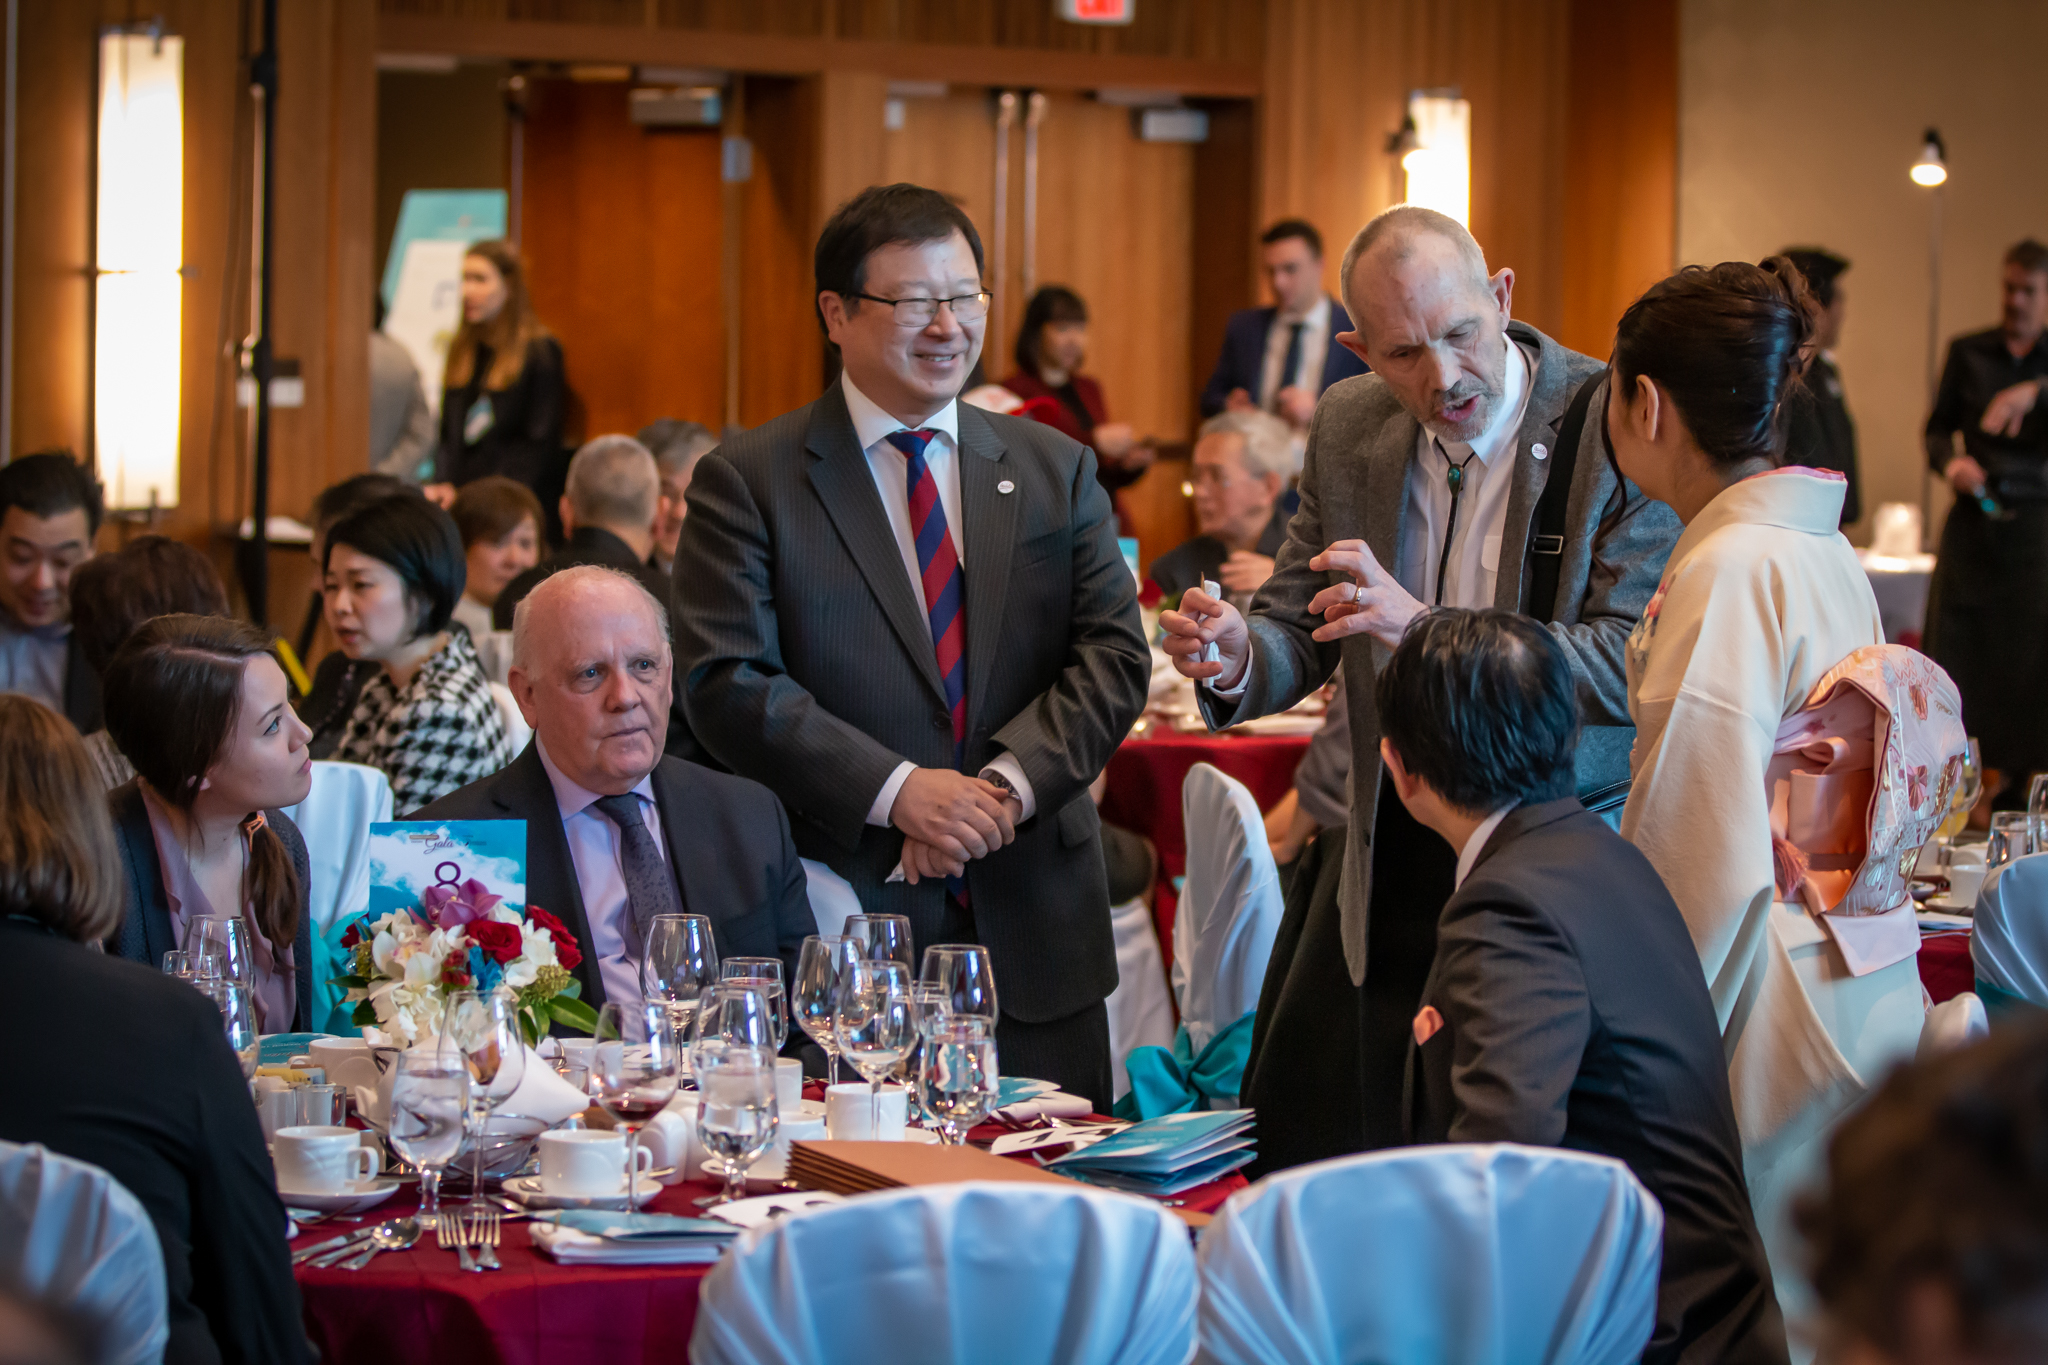 190310 Sakura Gala 2019 17-05-47-2 - Photo by Adam PW Smith.jpg